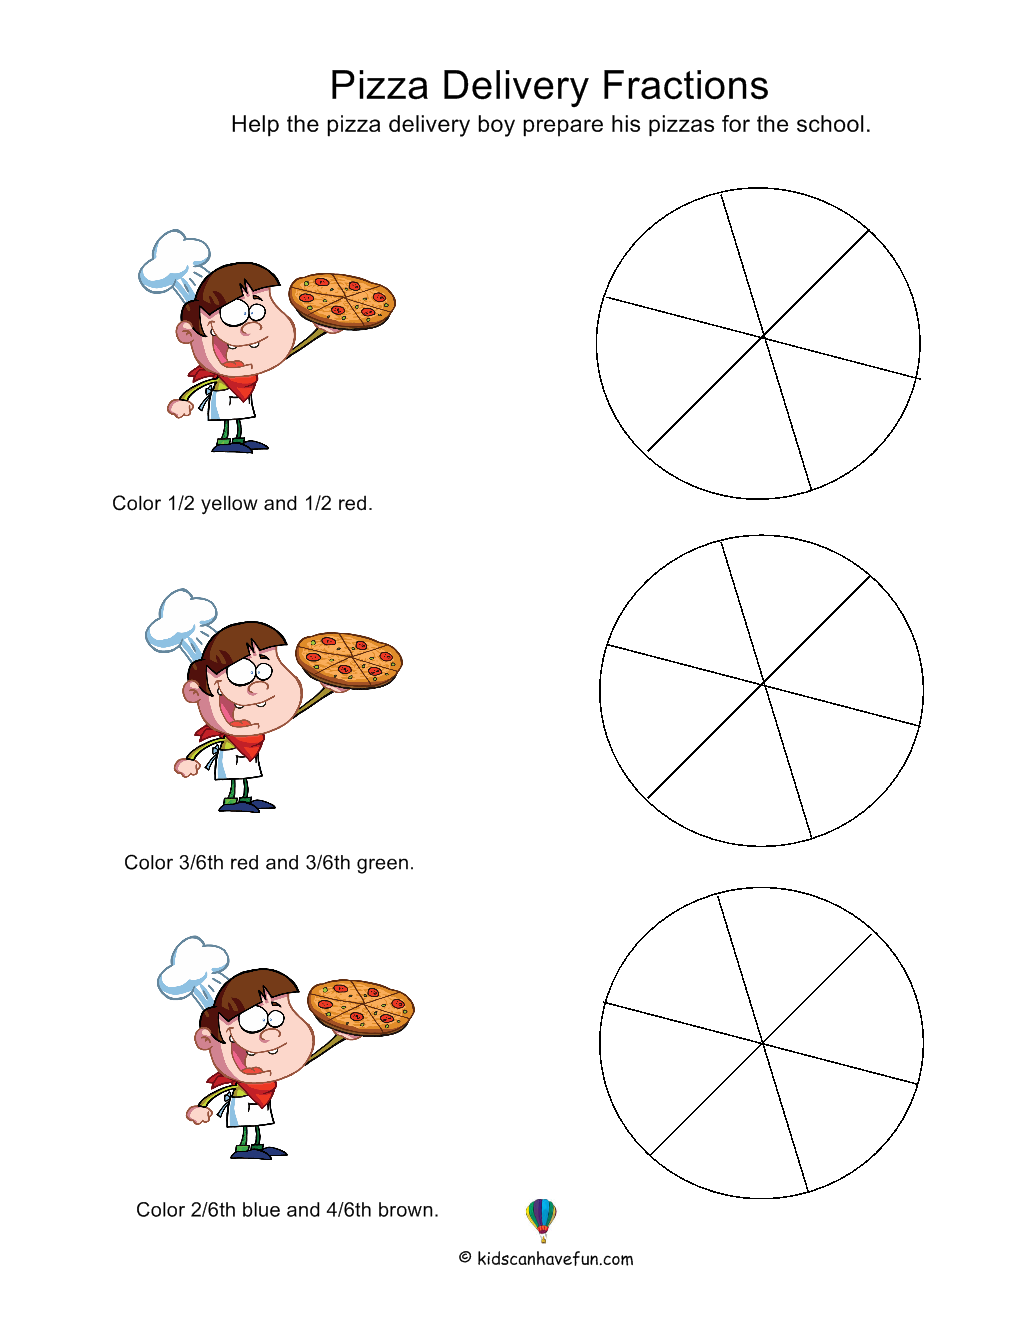 Pizza Delivery Fractionskidscanhavefunmath – Introducing Fractions Worksheets